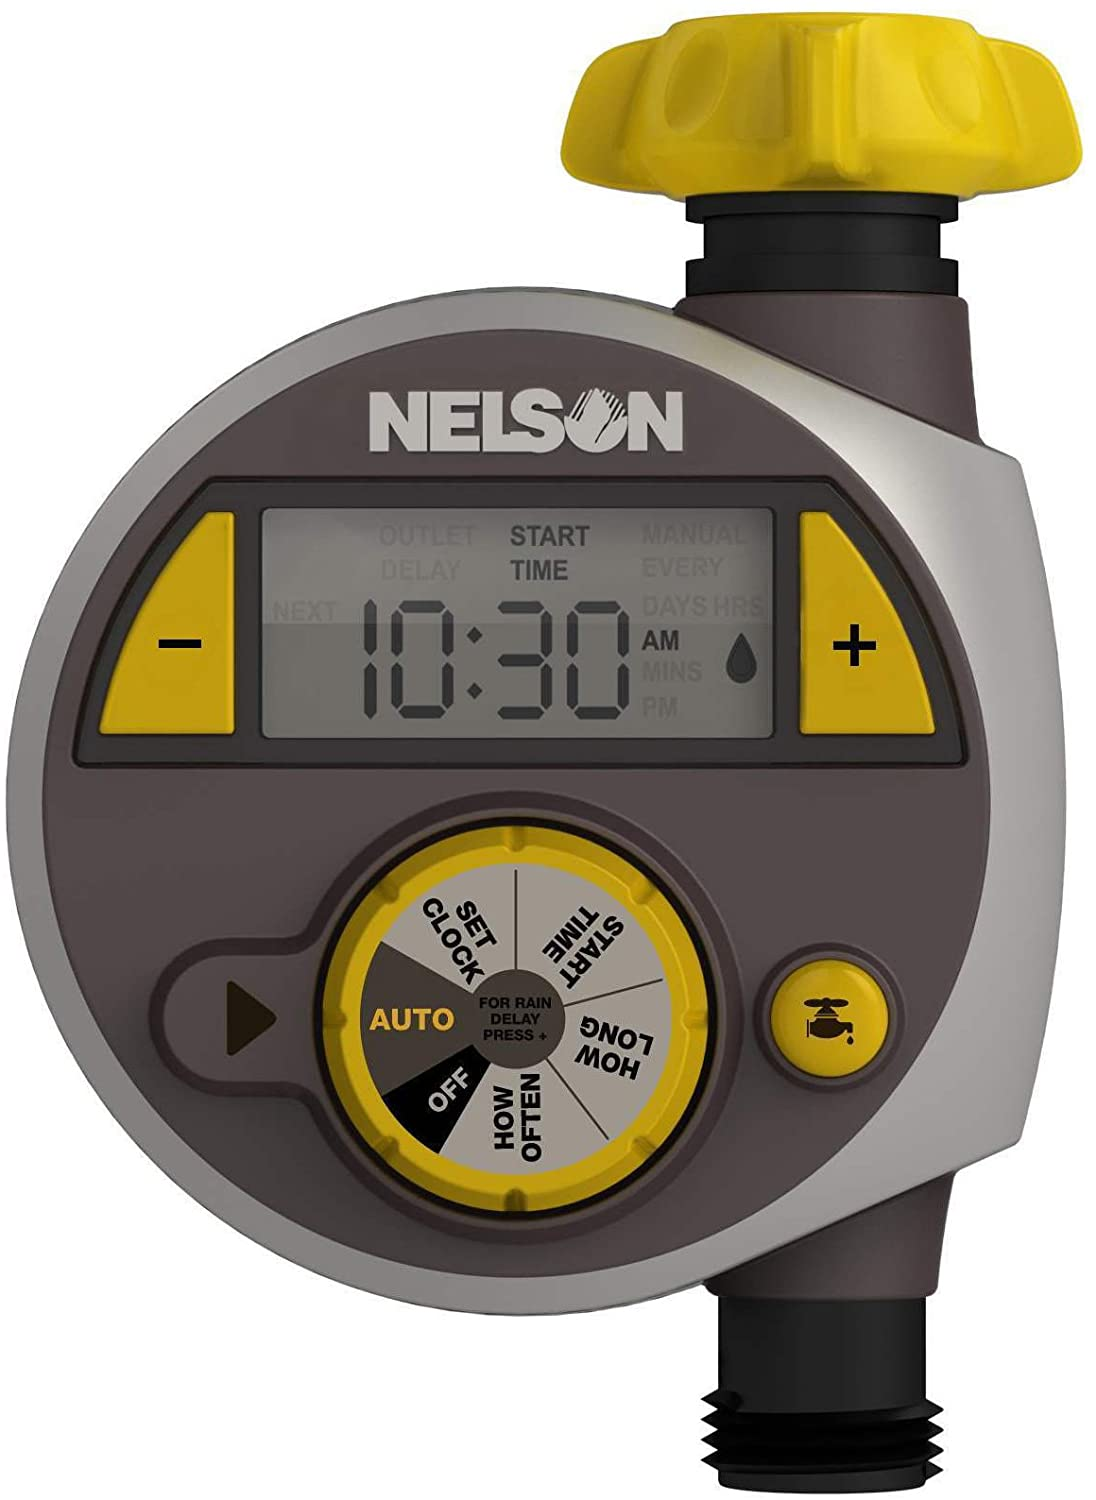 Nelson 56607 Timer with LCD New popularity Screen Max 86% OFF Large